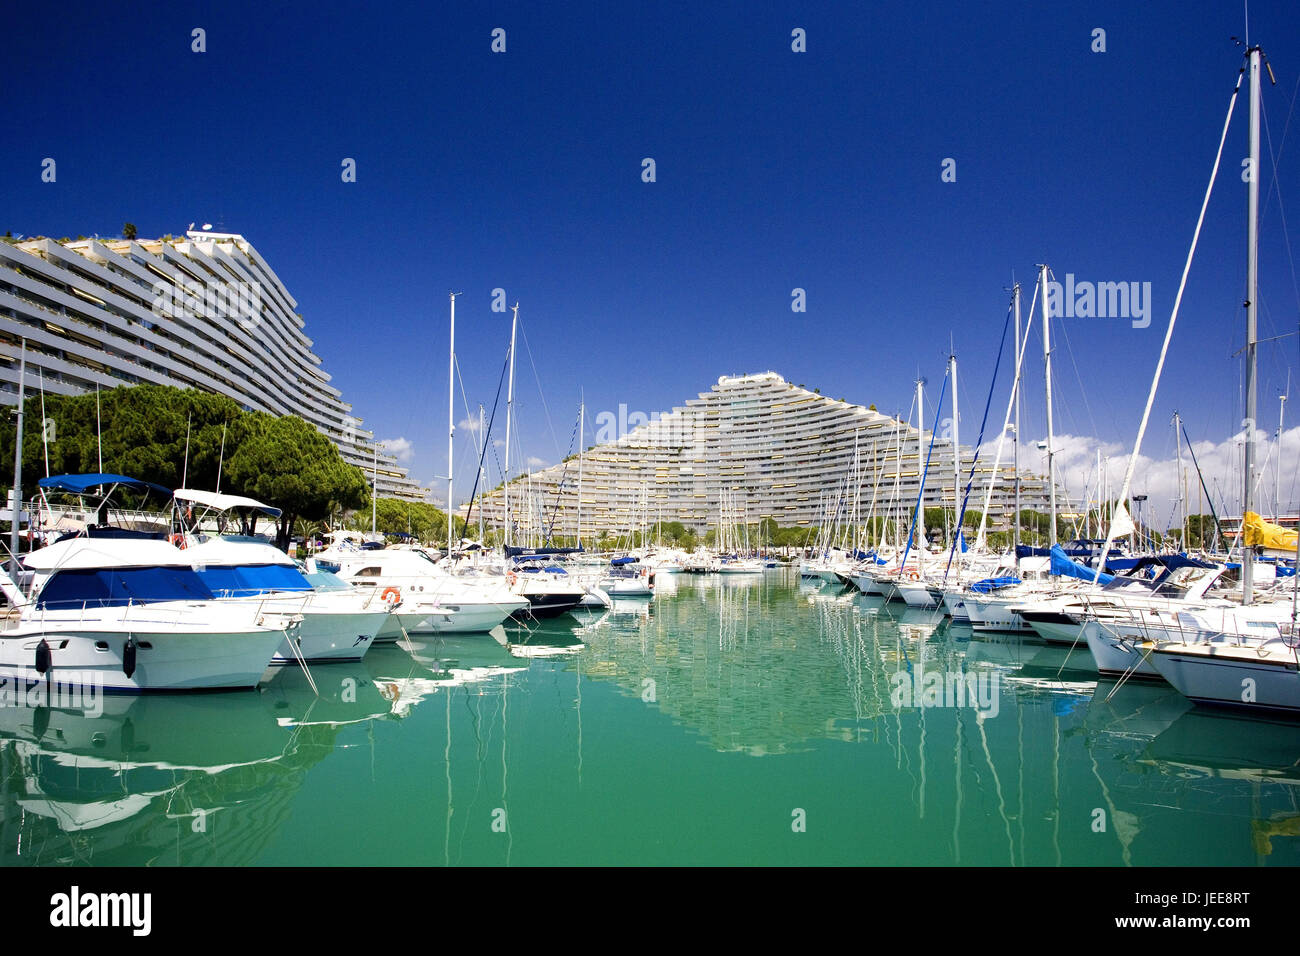 France, La grandee moth, hotel complex, yacht harbour, seaside resort, hotel building, hotel complex, structure, - Stock Image